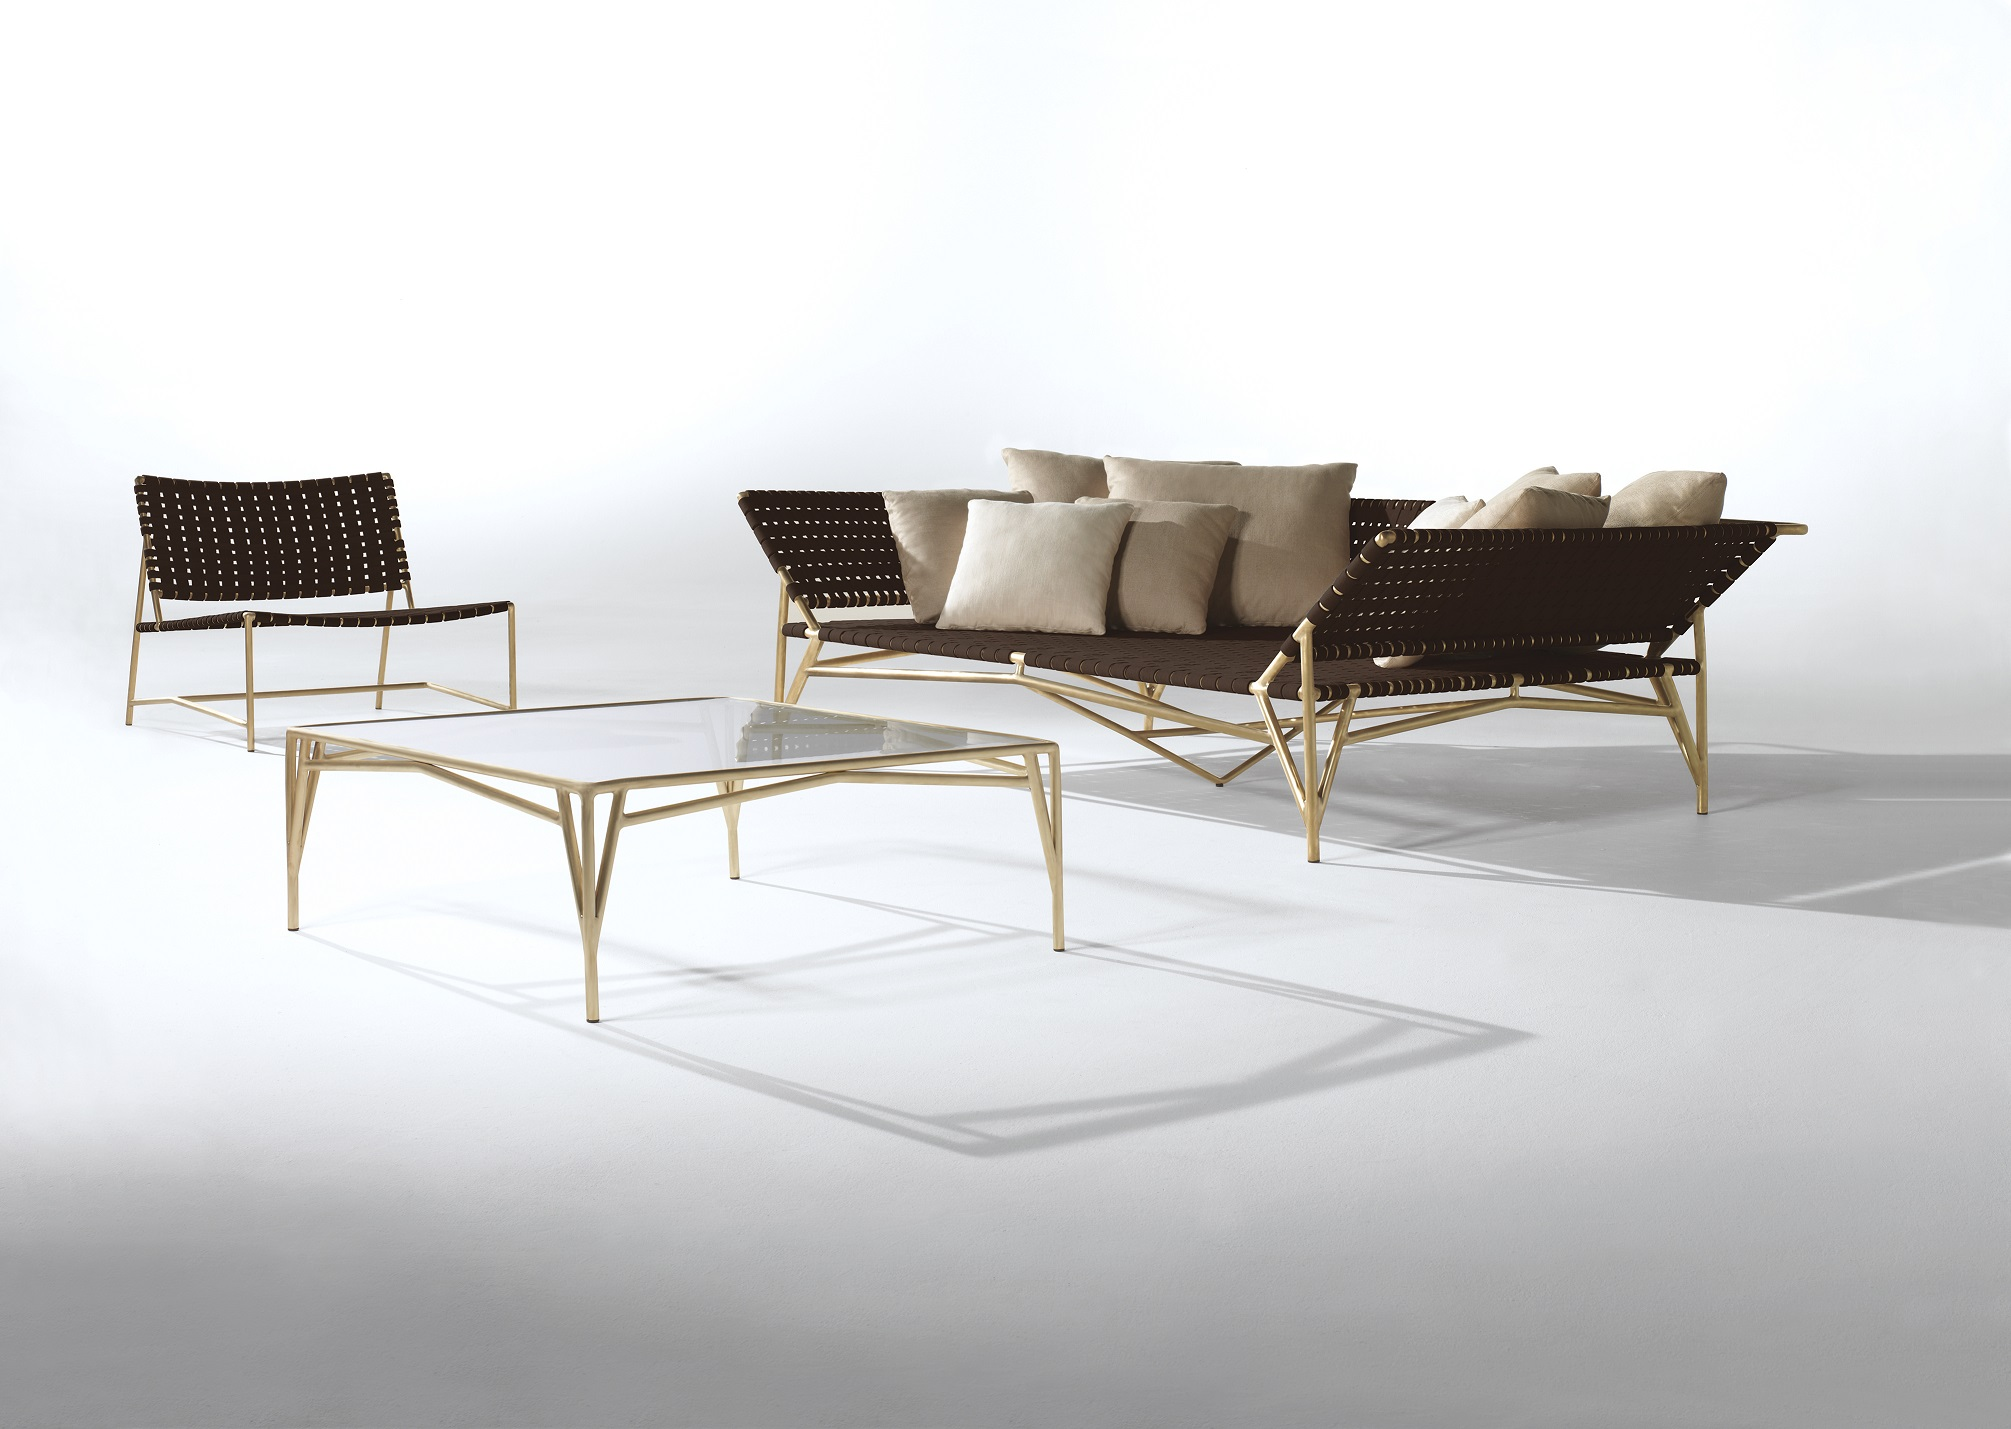 Brown Jordan Stretch Daybed and Lounge Chair and Coffee Table